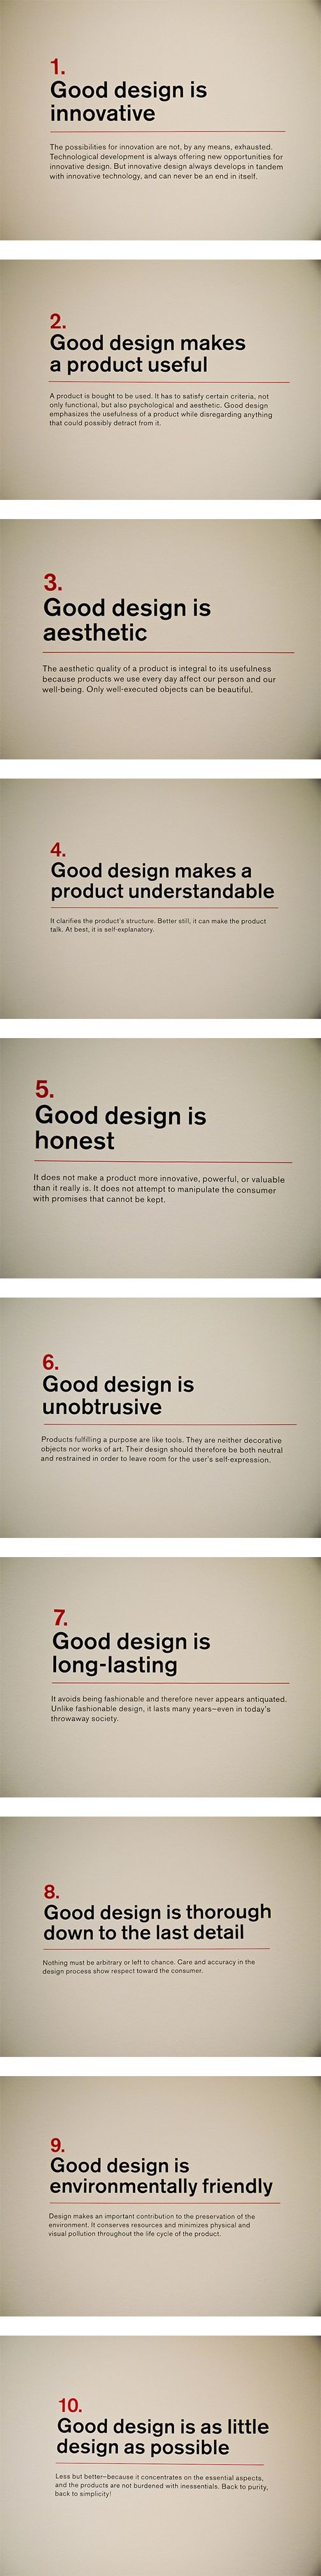 [10 Commandments of Good Design] What do you think?  www.geneciaalluora.com